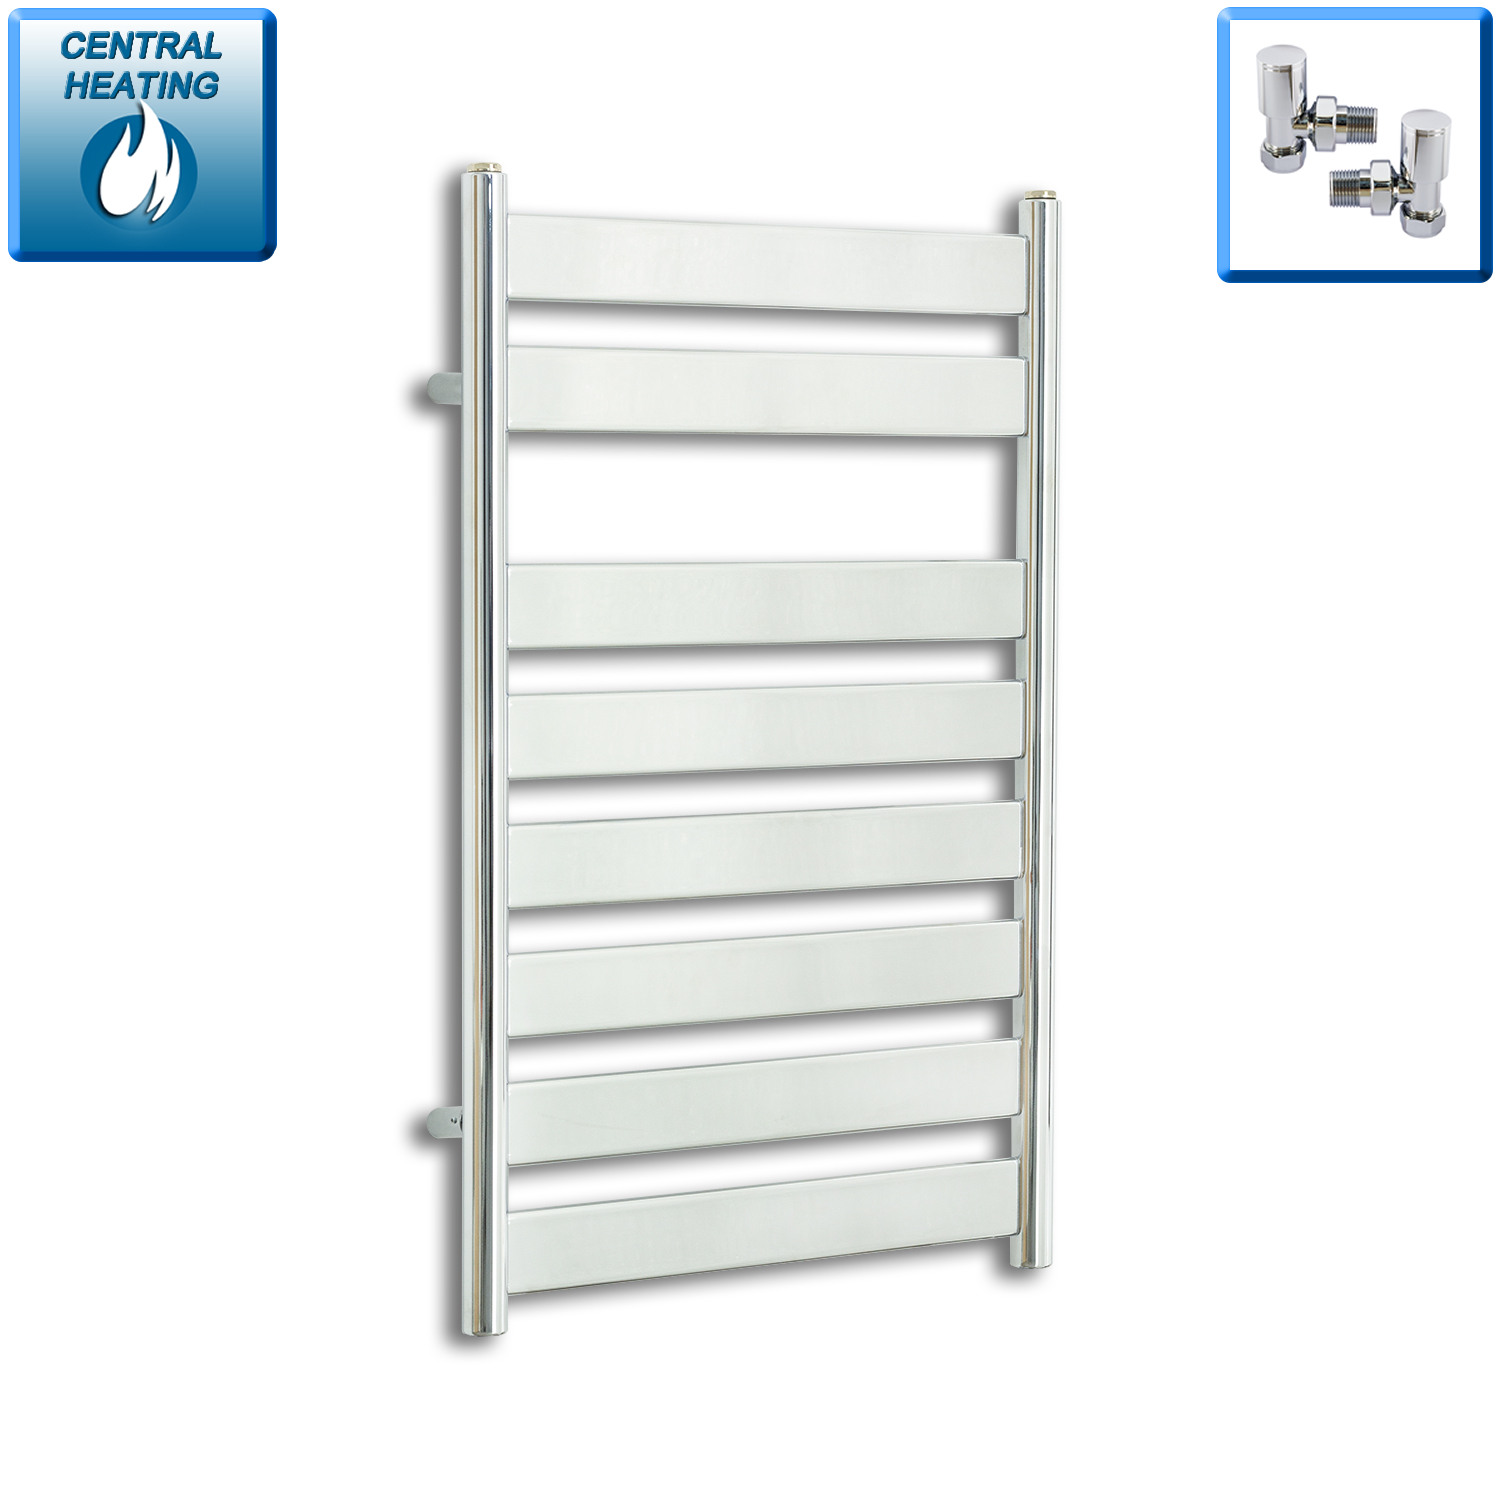 500mm Wide 800mm High Heated Flat Panel Design Towel Rail Radiator Chrome for Central Heating,With Angled Valve